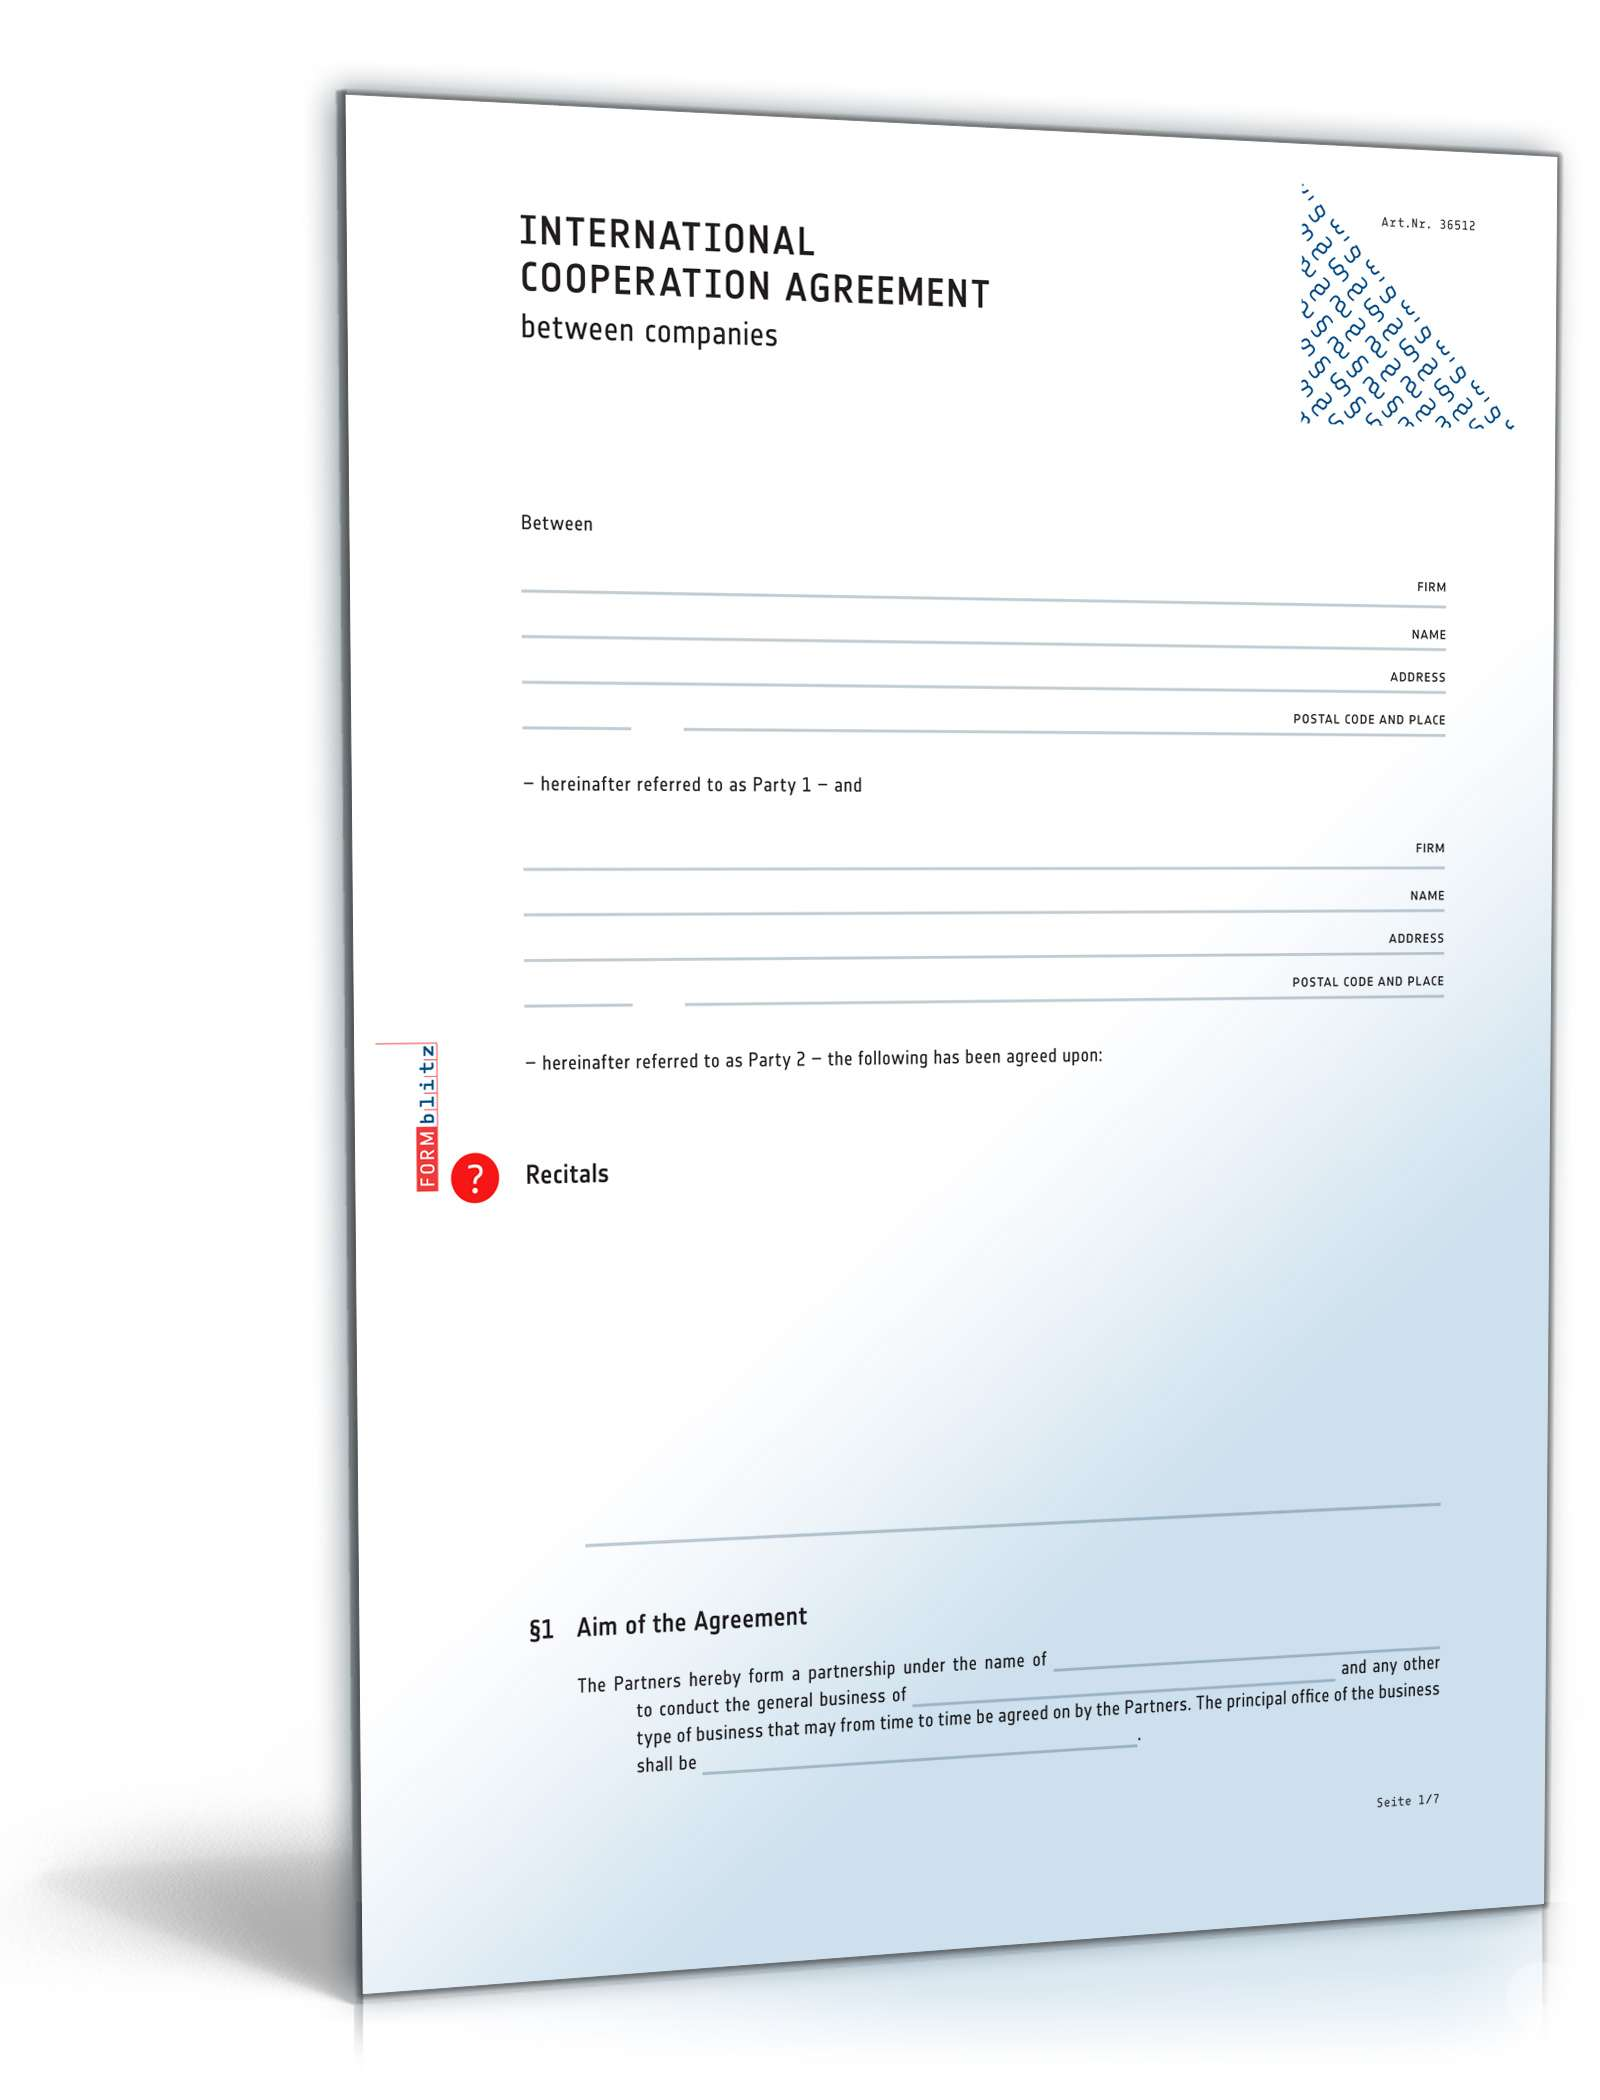 Internationaler Kooperationsvertrag Englisch